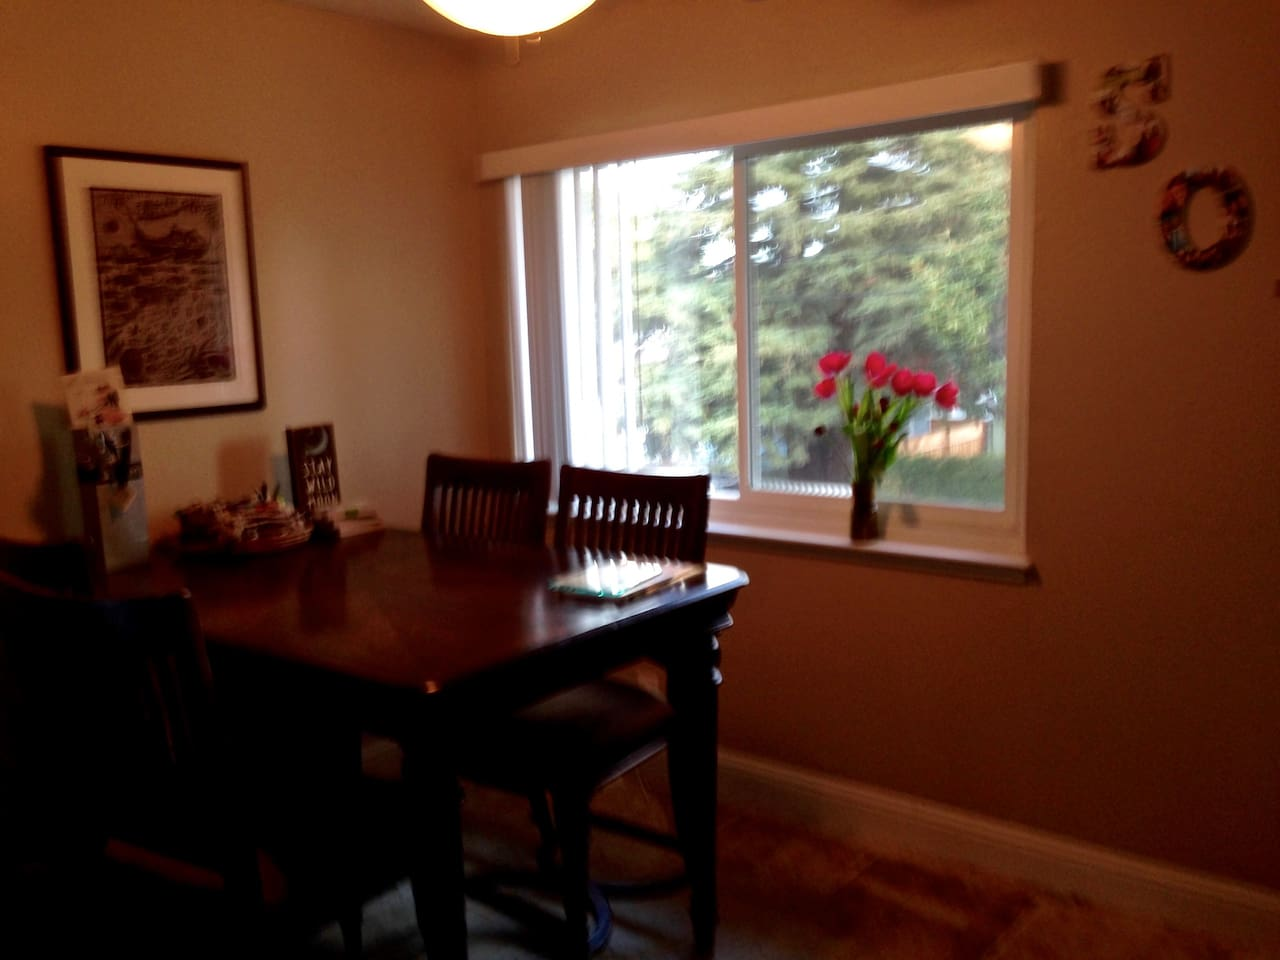 Dining room table with leaf in center for extended space